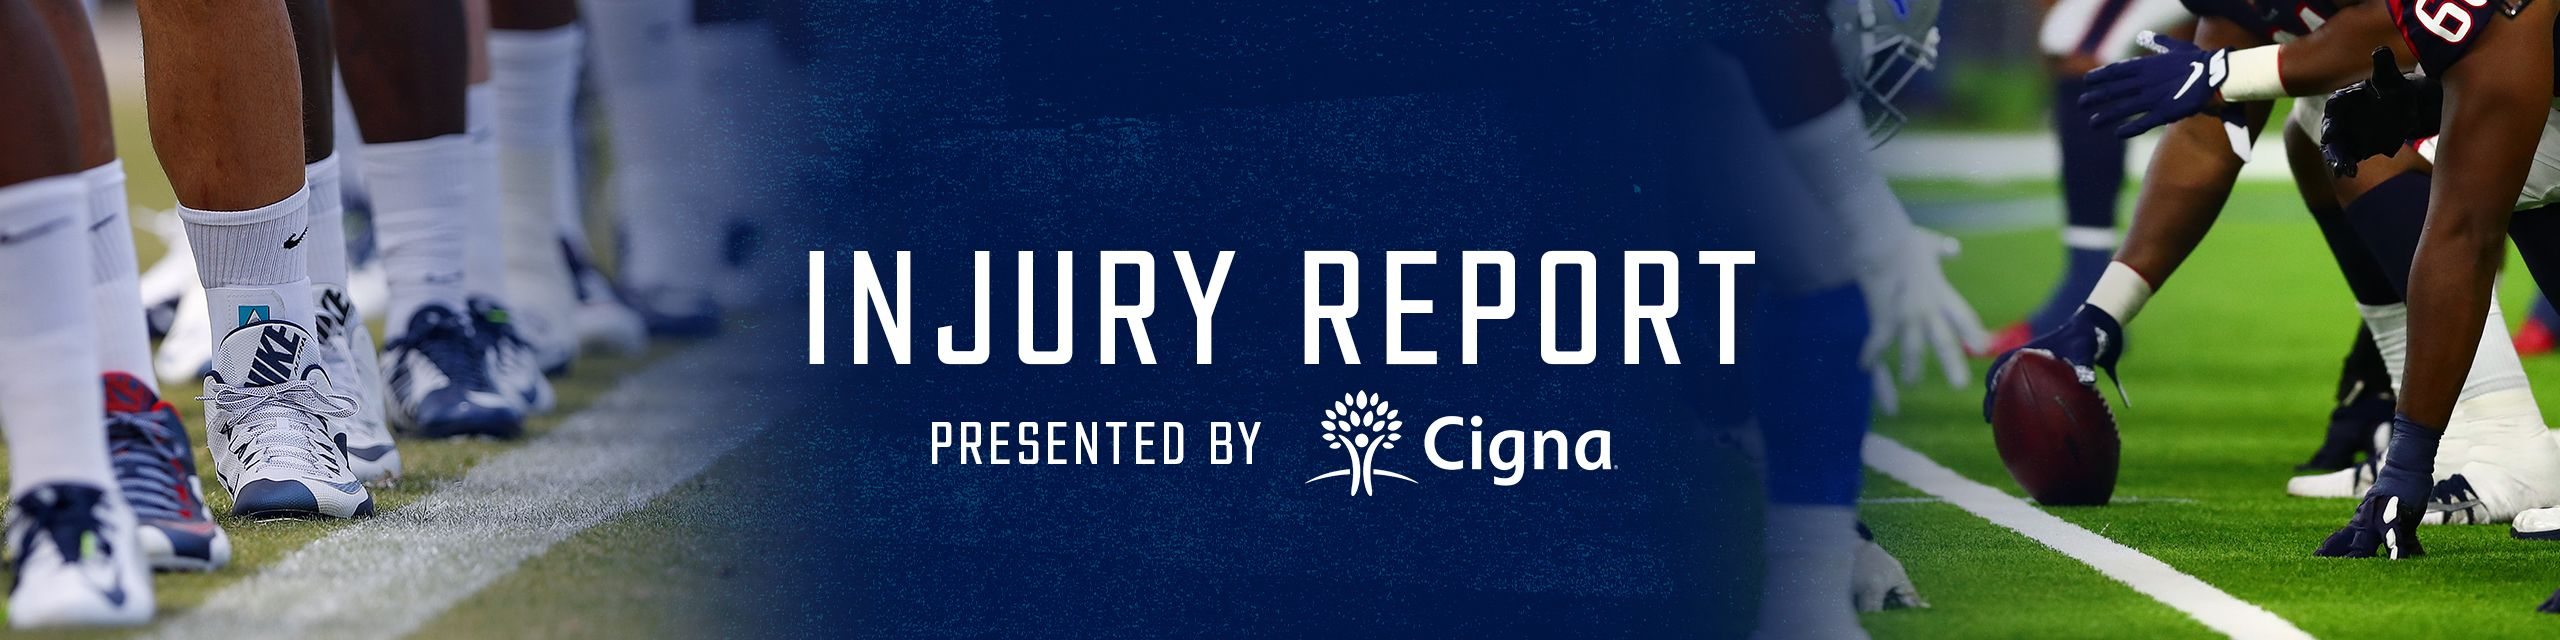 Injury Report. presented by Cigna